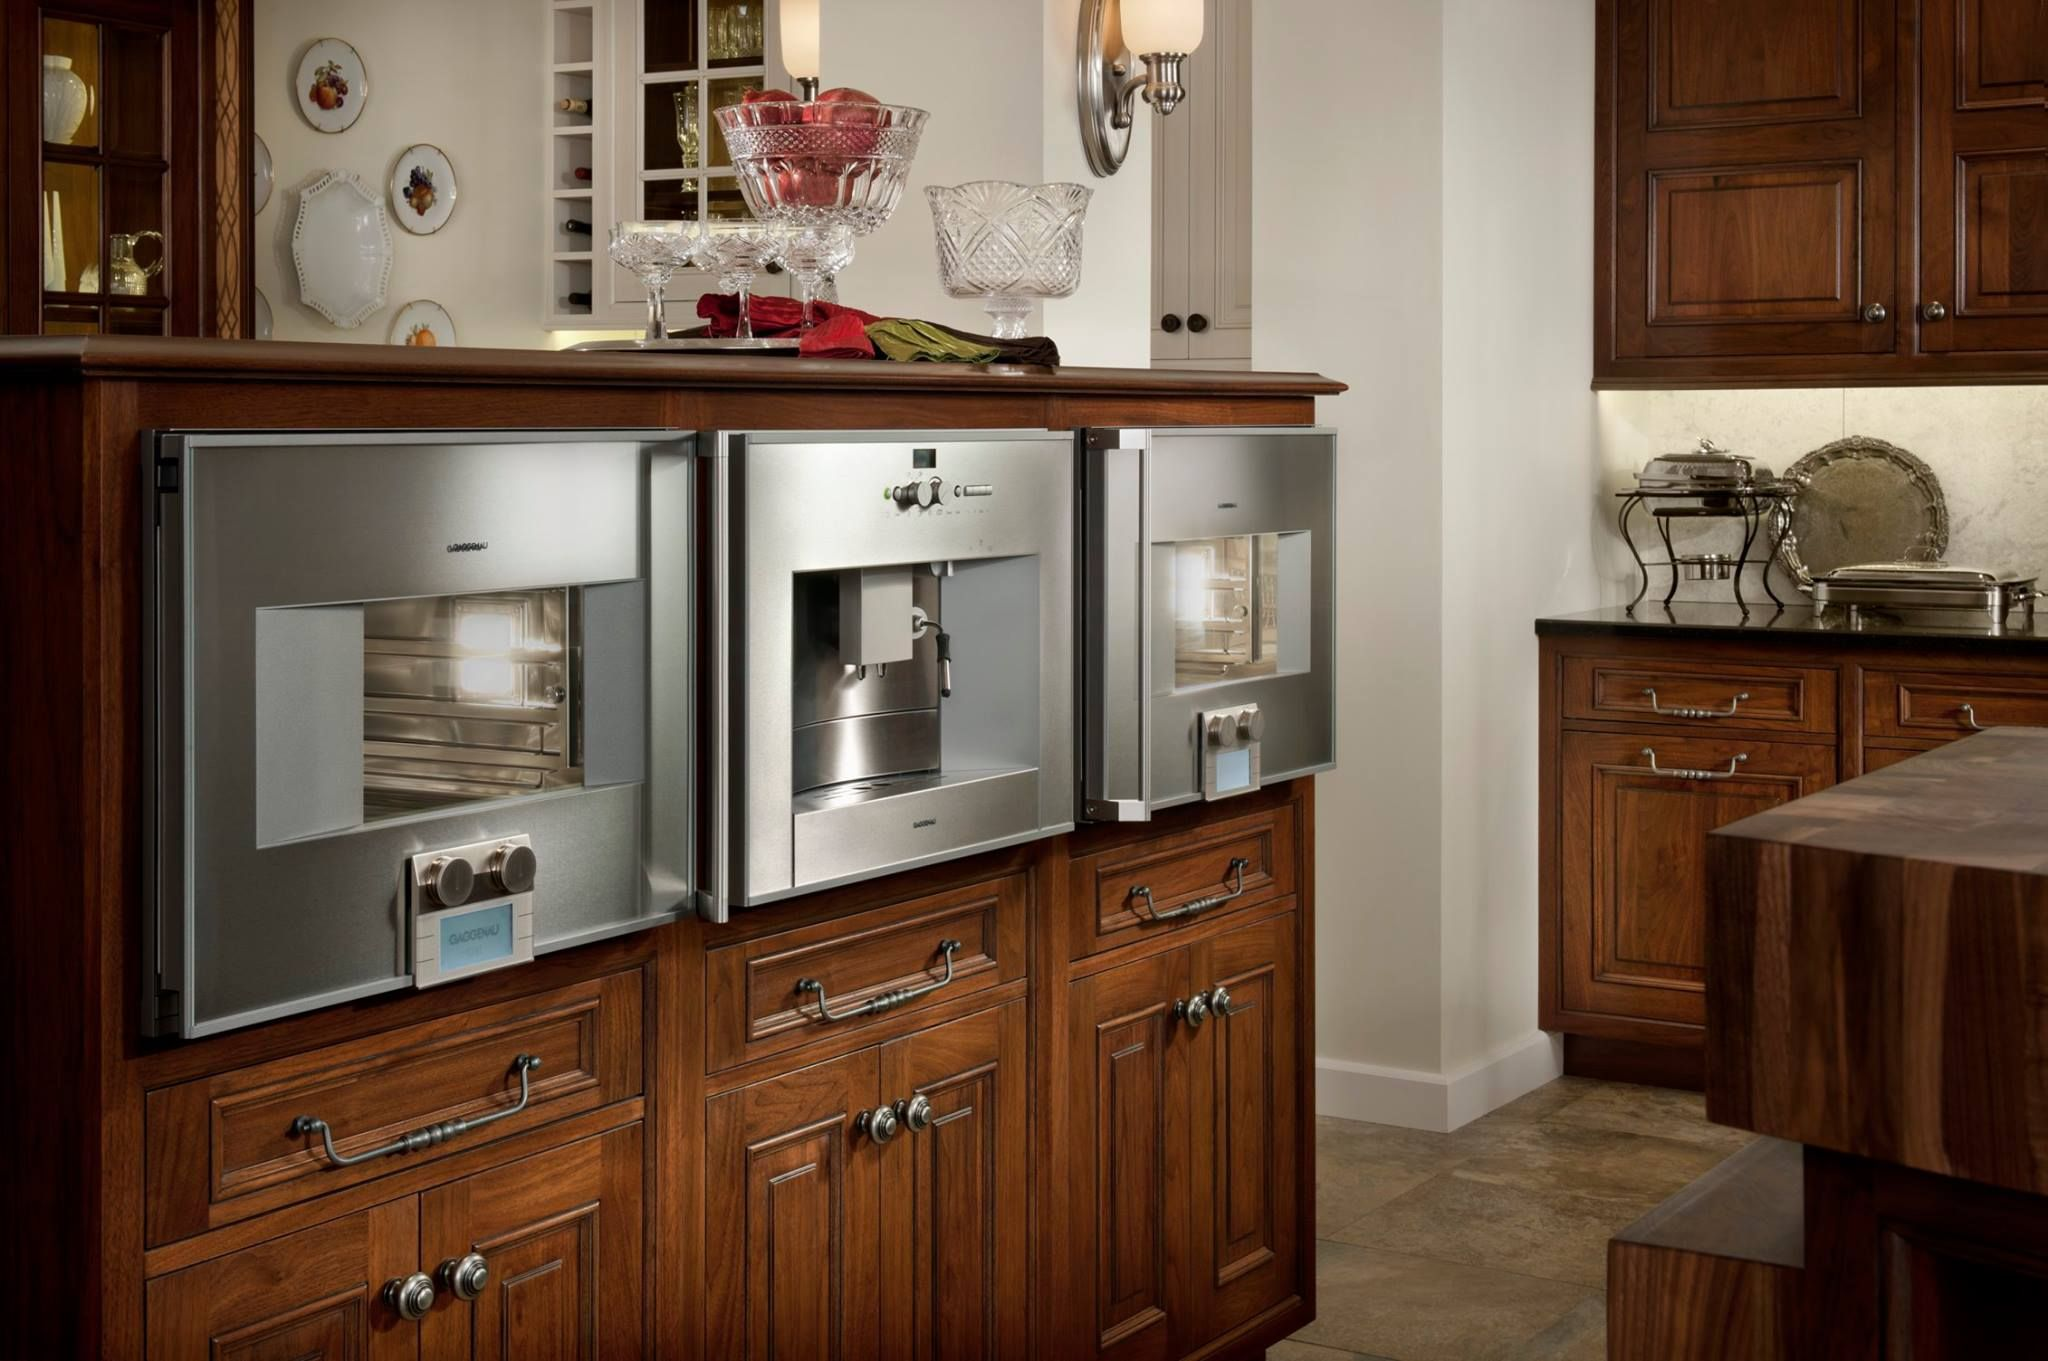 Wood Mode Cabinets Houston Texas Wood Mode Kitchen Inspiration Design Cabinetry